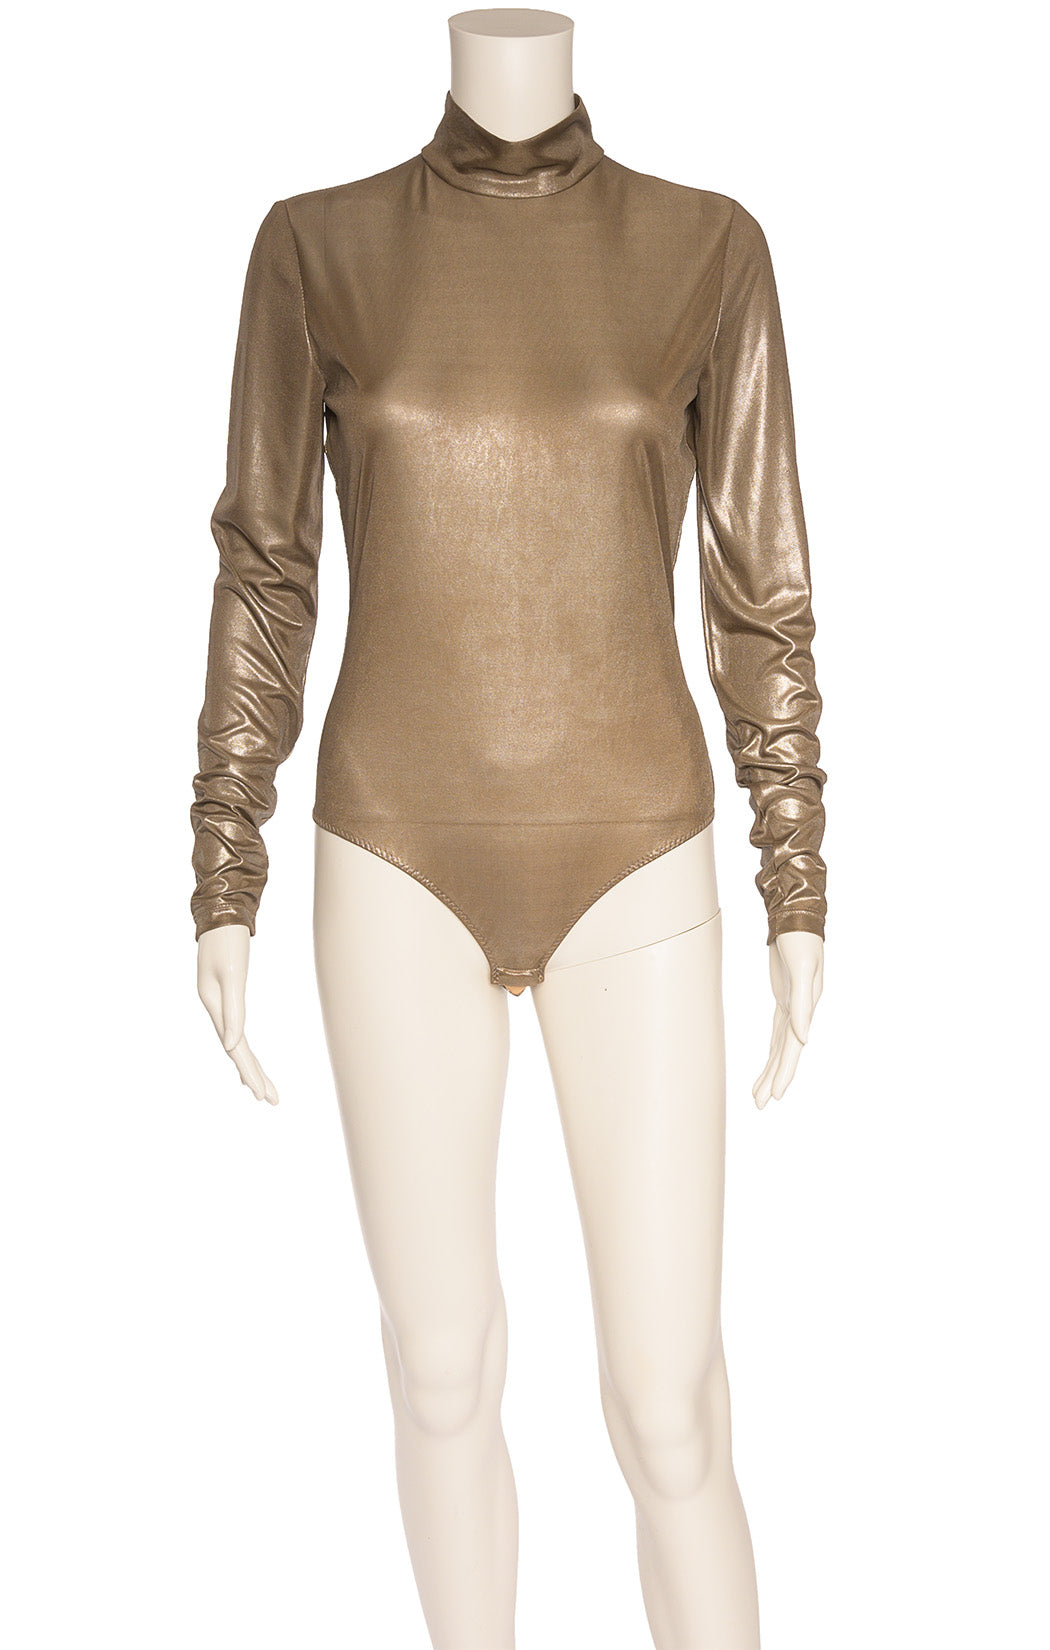 Front view of VERSACE  Bodysuit Size: IT 40 (comparable to US 2-4)